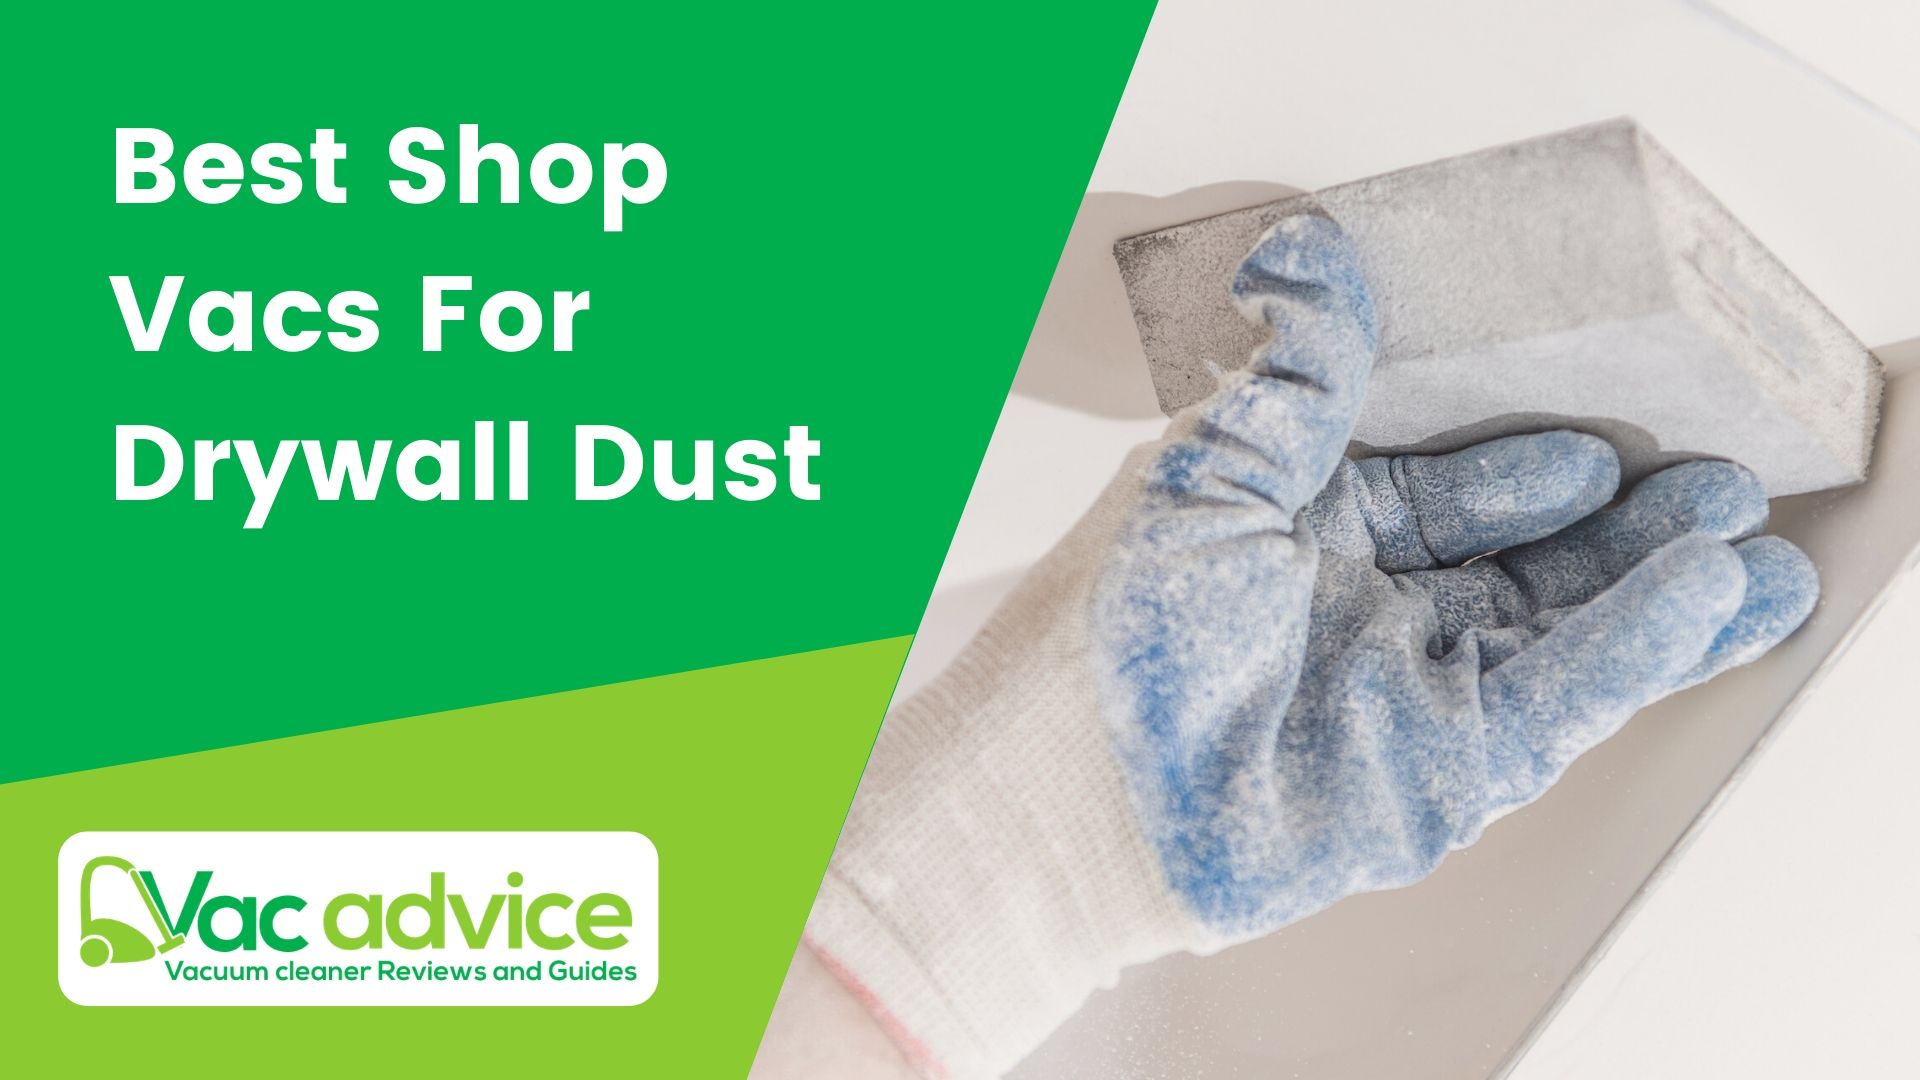 The 5 Best Shop Vacs For Drywall Dust Complete Guide And Reviews